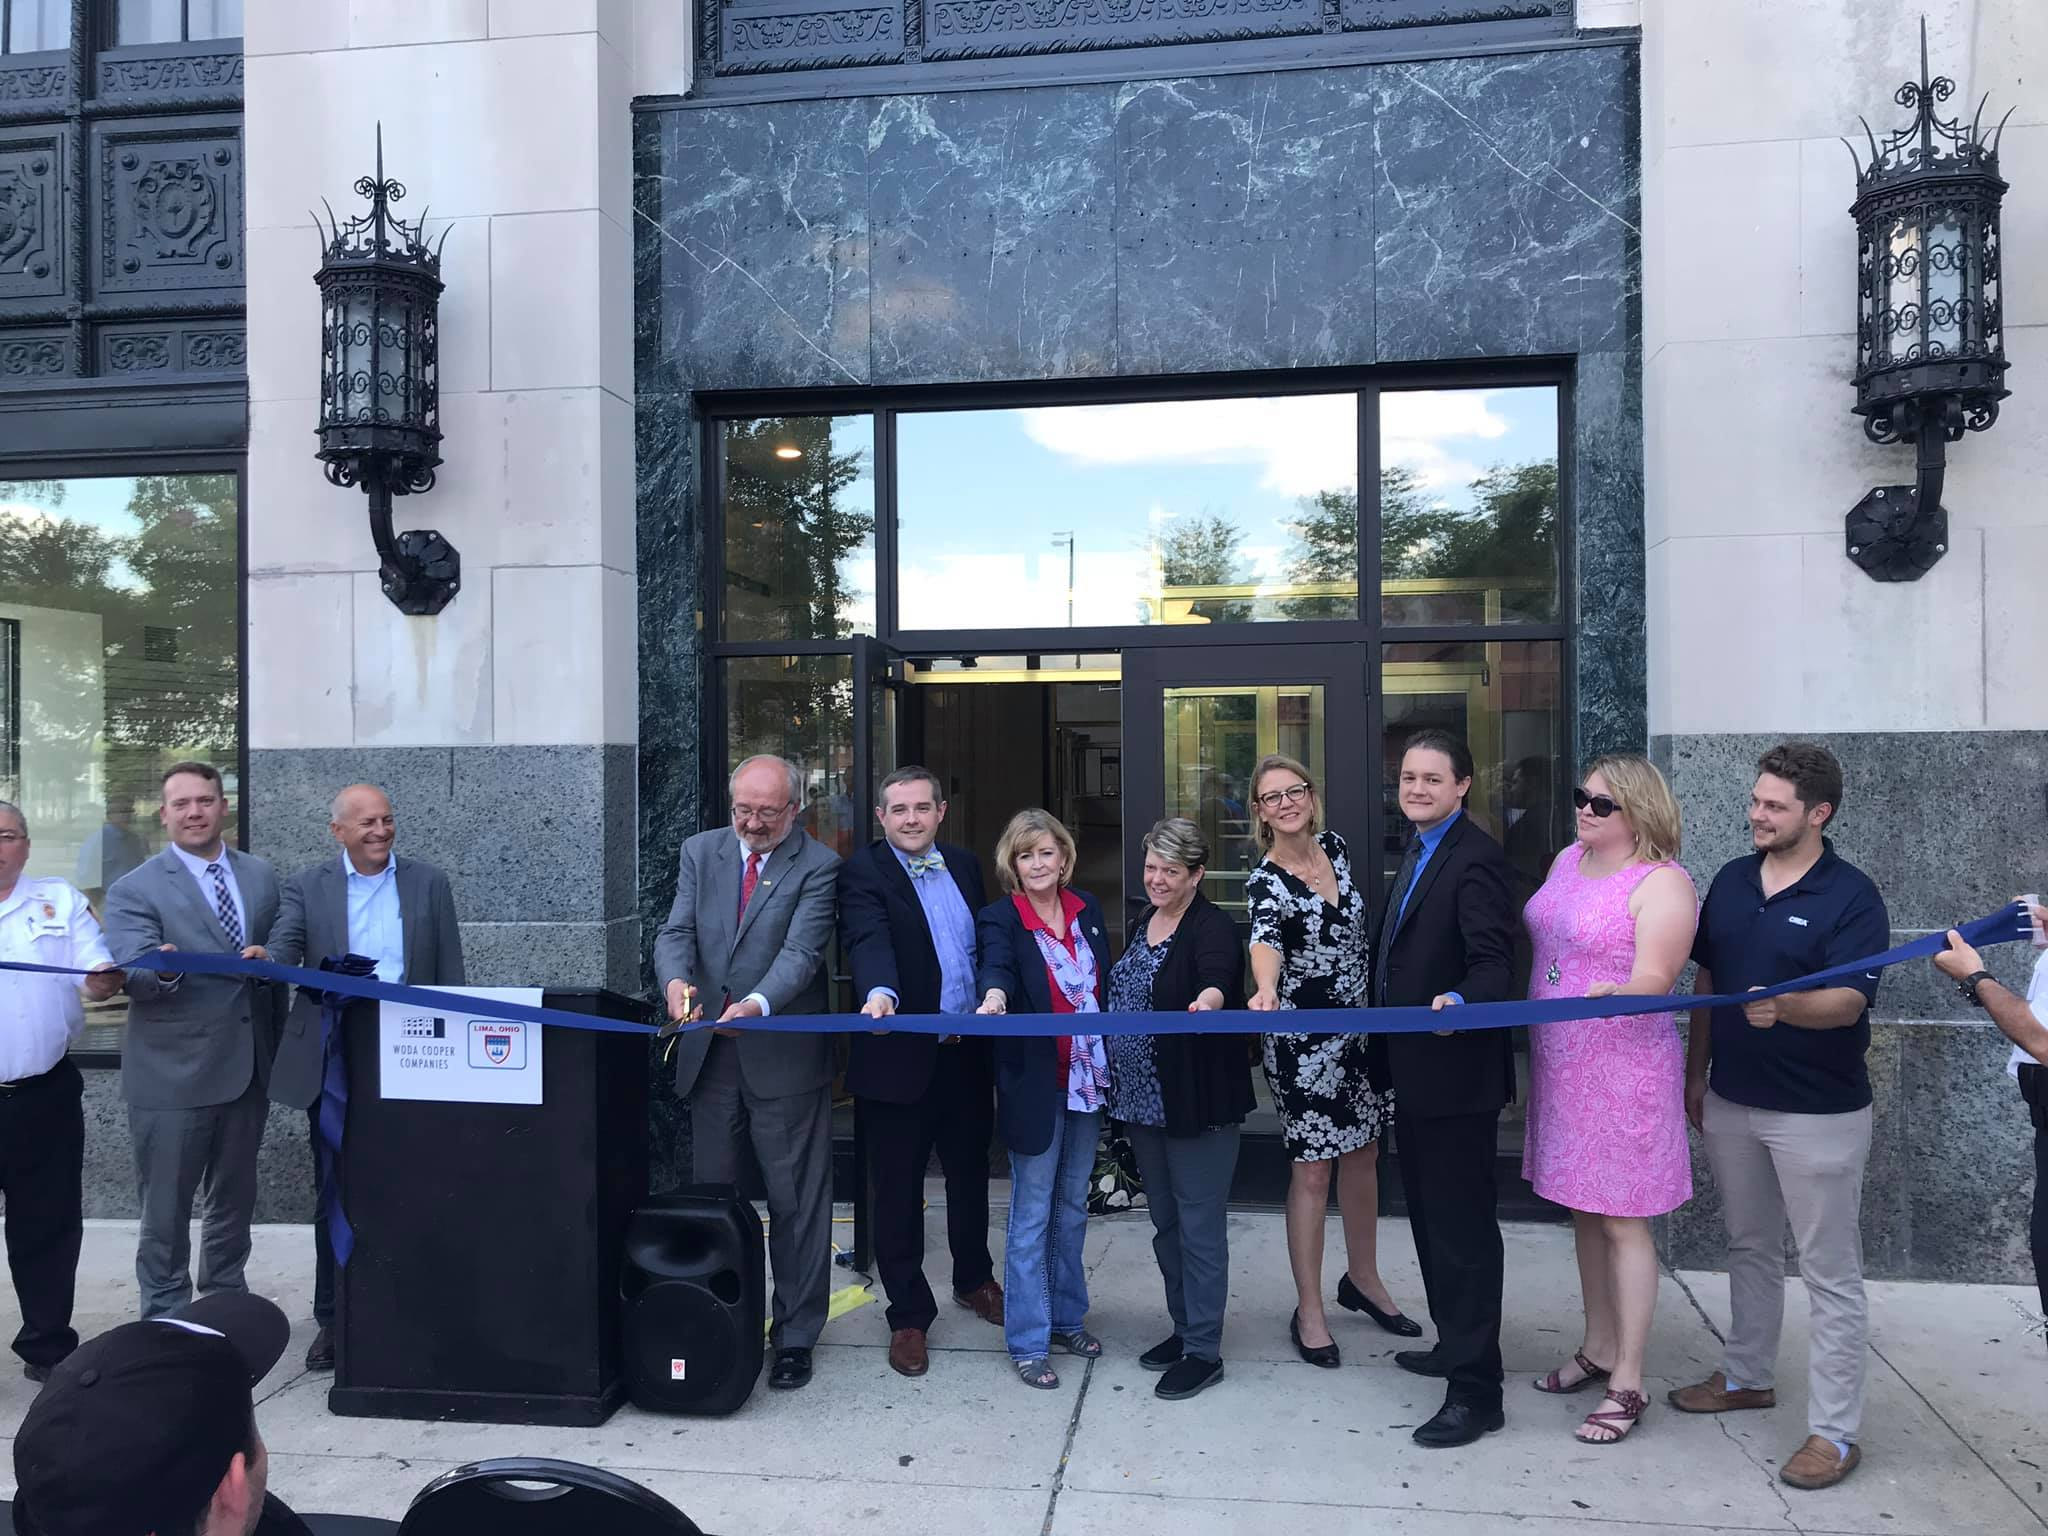 Brian Dunlap, President/CEO attends the ribbon cutting at the grand opening of the newly renovated 43 Town Square